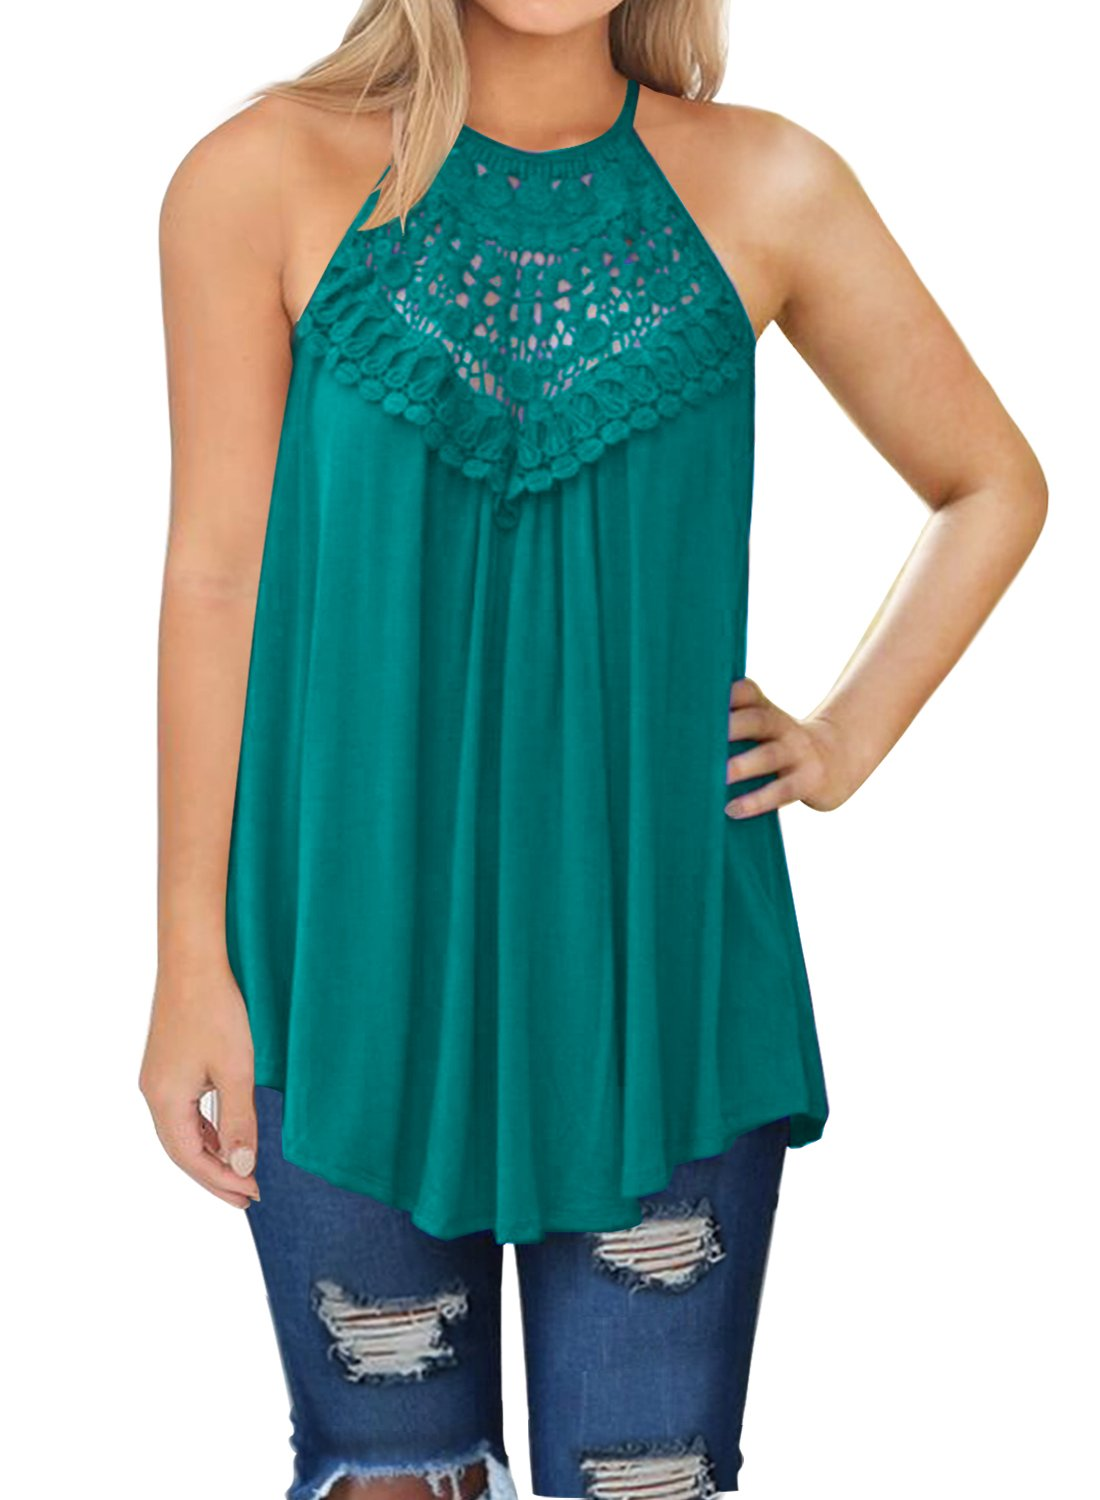 MIHOLL Womens Summer Casual Sleeveless Tops Lace Flowy Loose Shirts Tank Tops (Lake Blue, Large)